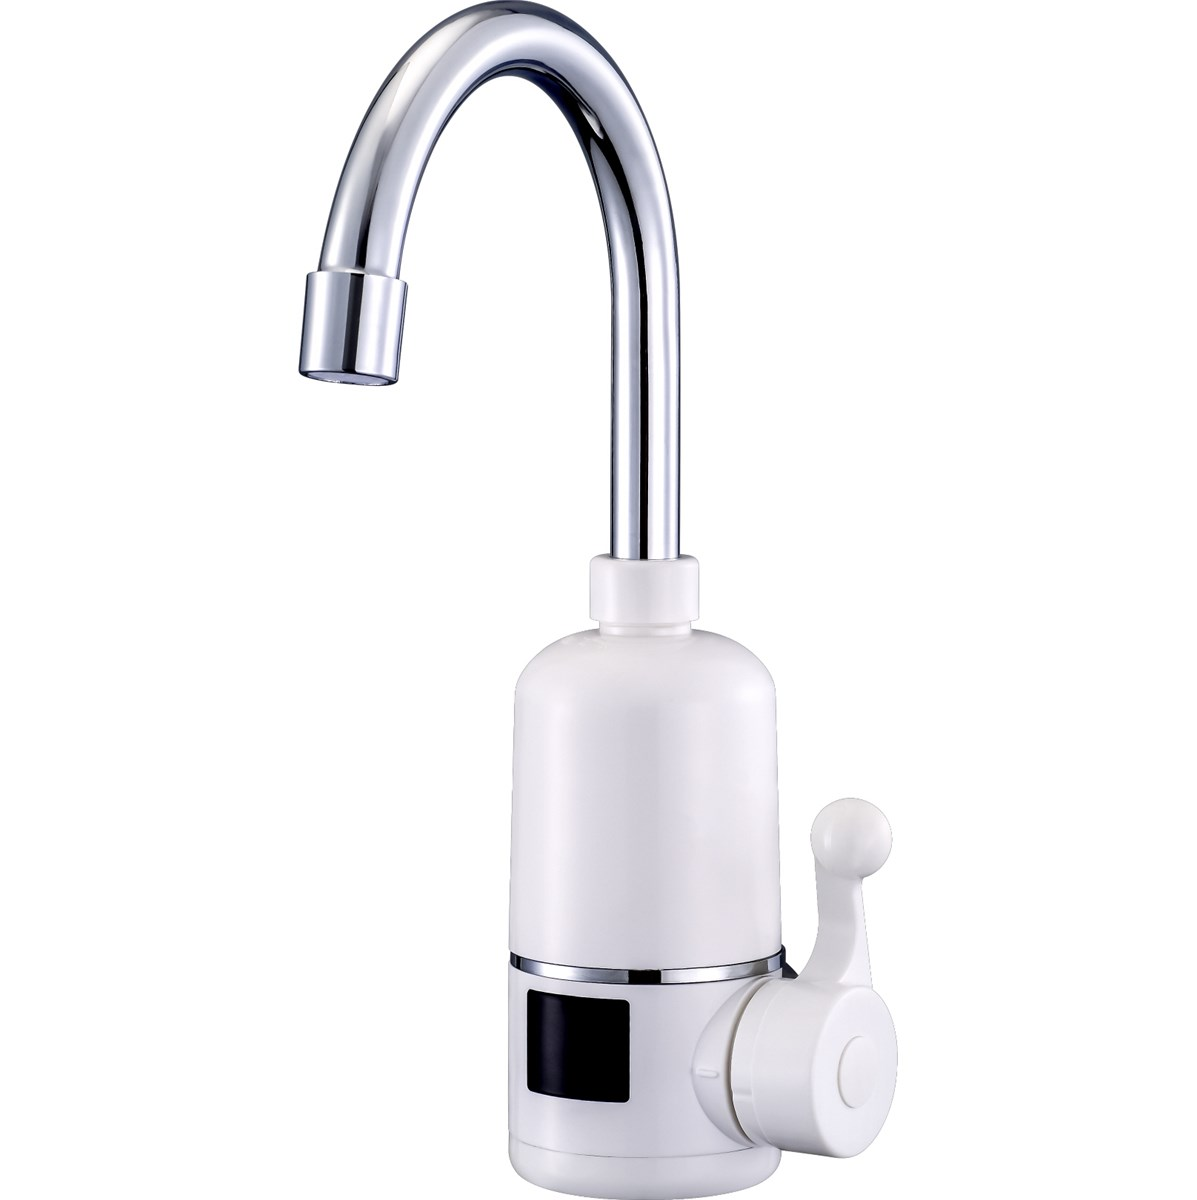 220V 3000V hot water tap electric faucet